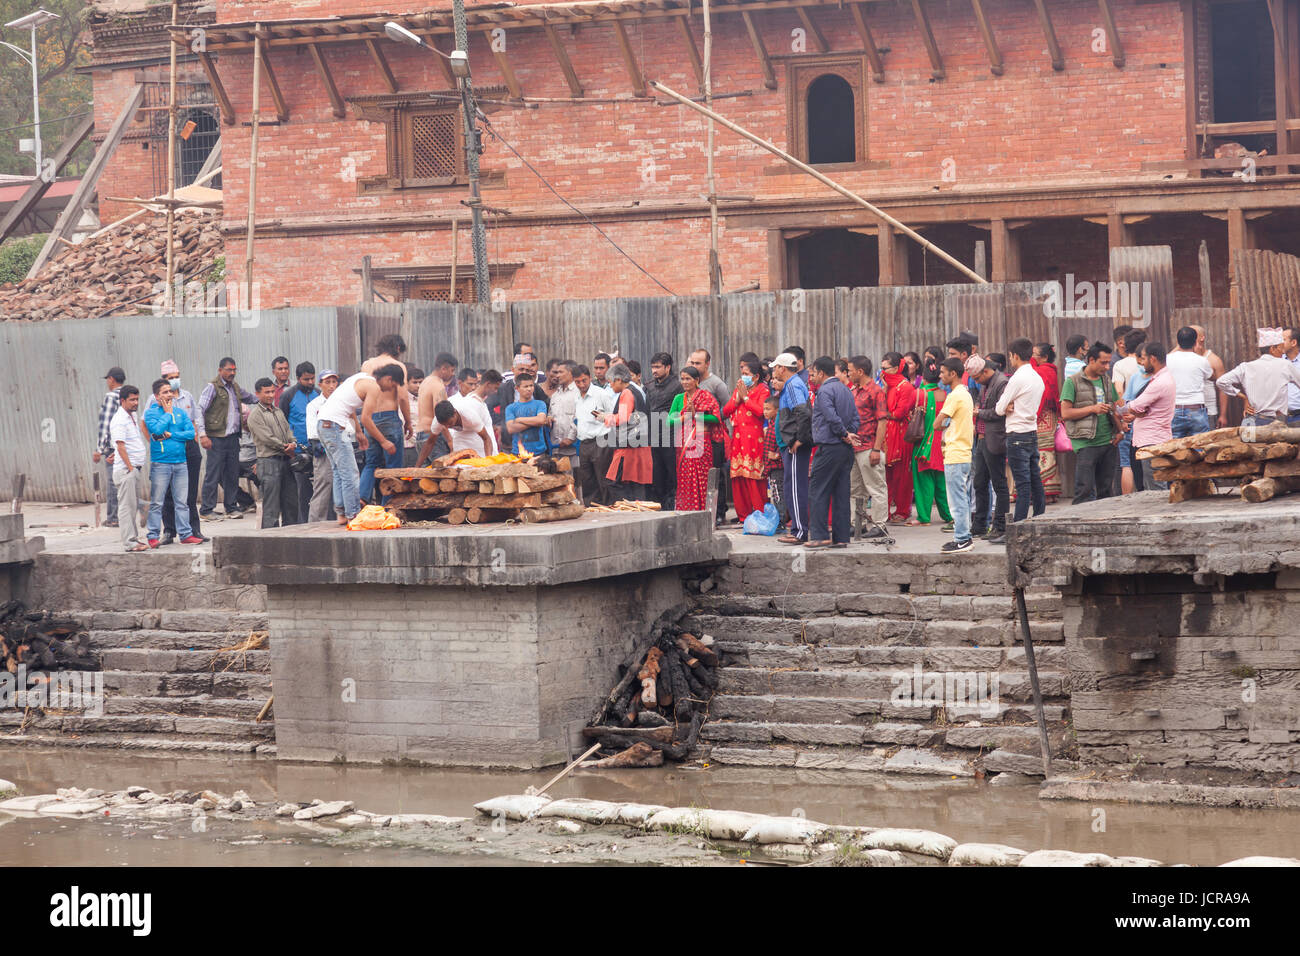 Cremation Ceremony at the Ghats site and the Holy Temple of Lord Shiva in Pasupatianth Temple, Kathmandu,Nepal,Asia Stock Photo